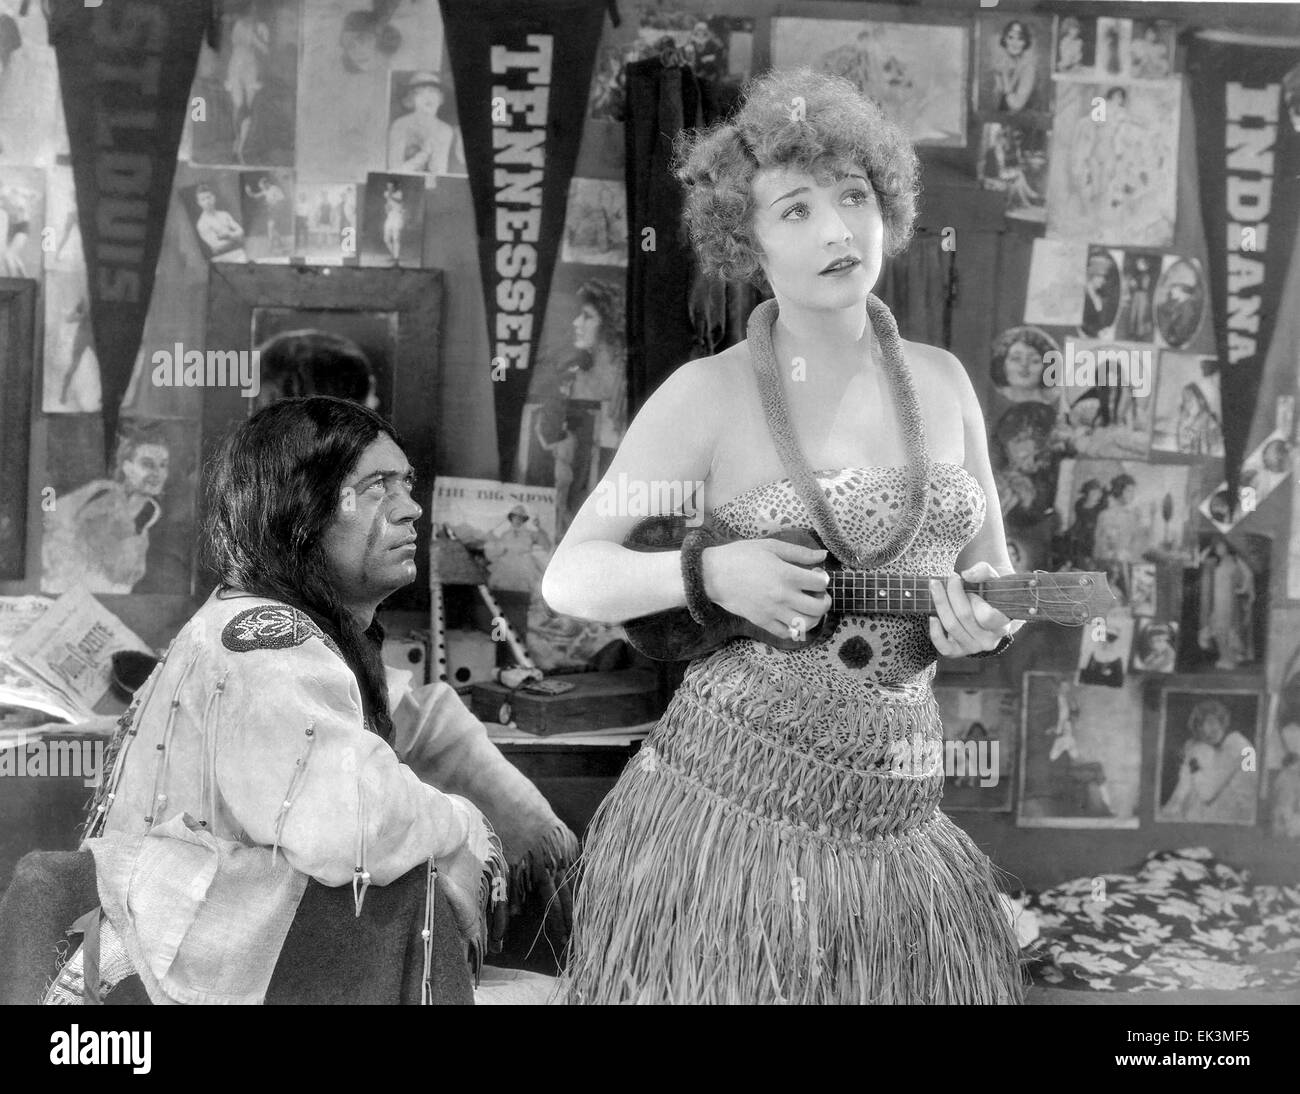 Betty Compson, on-set of the Silent Film 'Scarlet Seas', 1928 - Stock Image